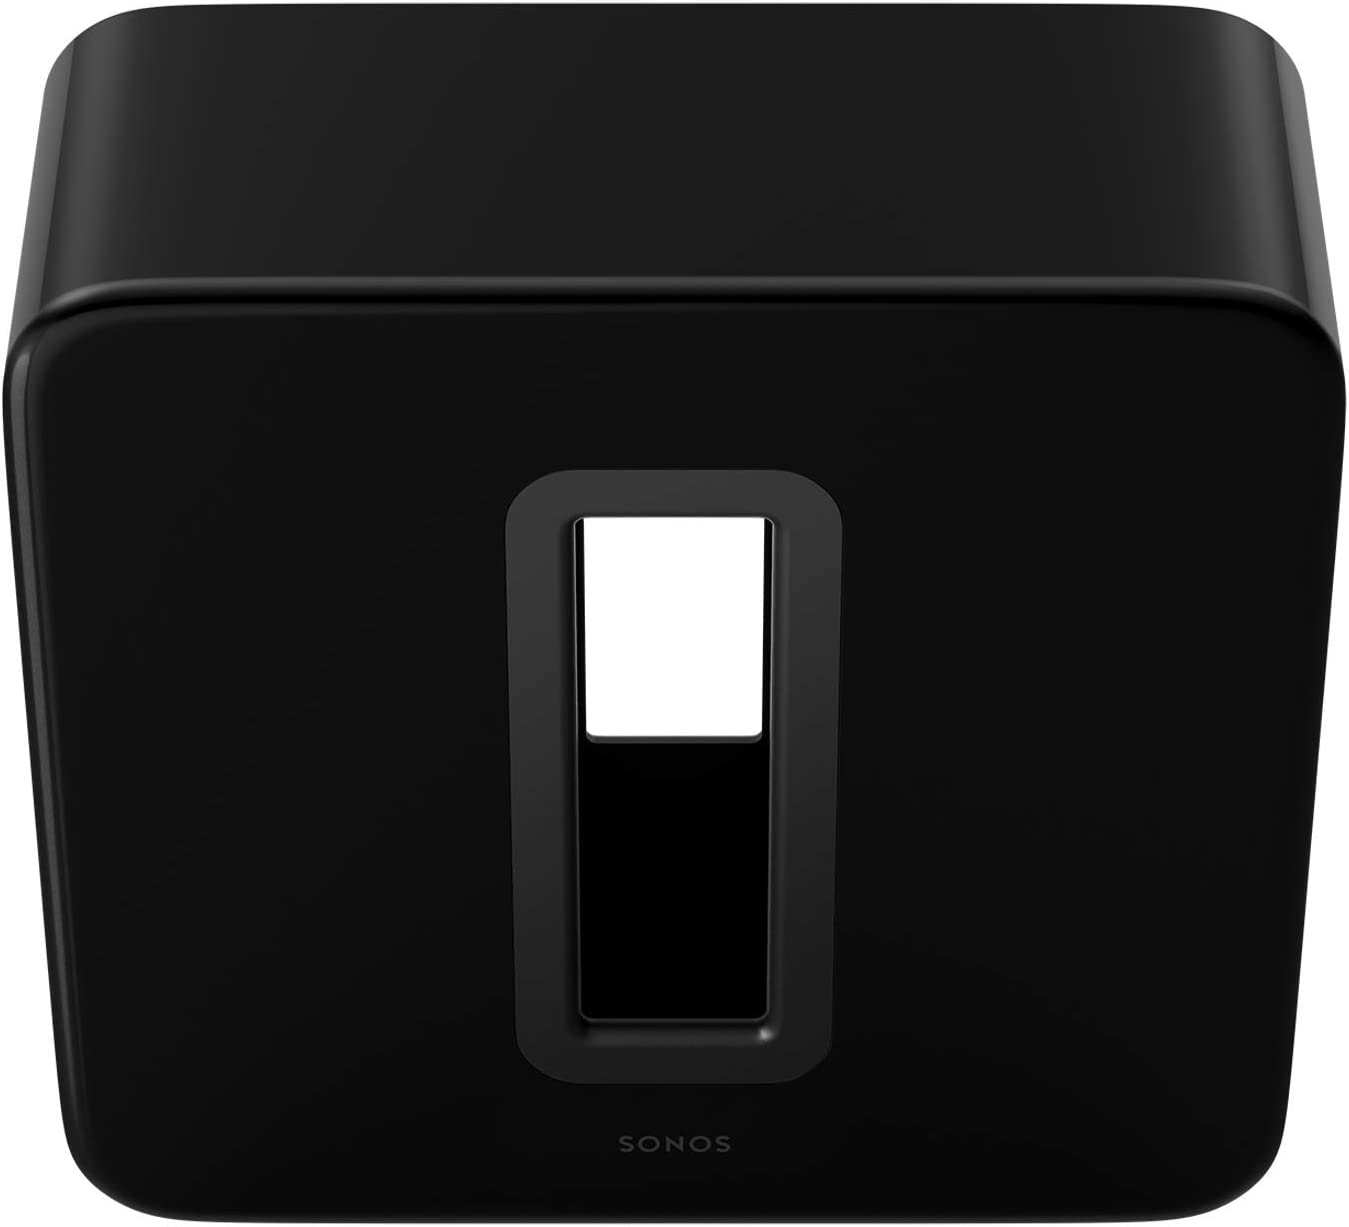 Sonos Sub - The Wireless Subwoofer for Deep Bass - Black